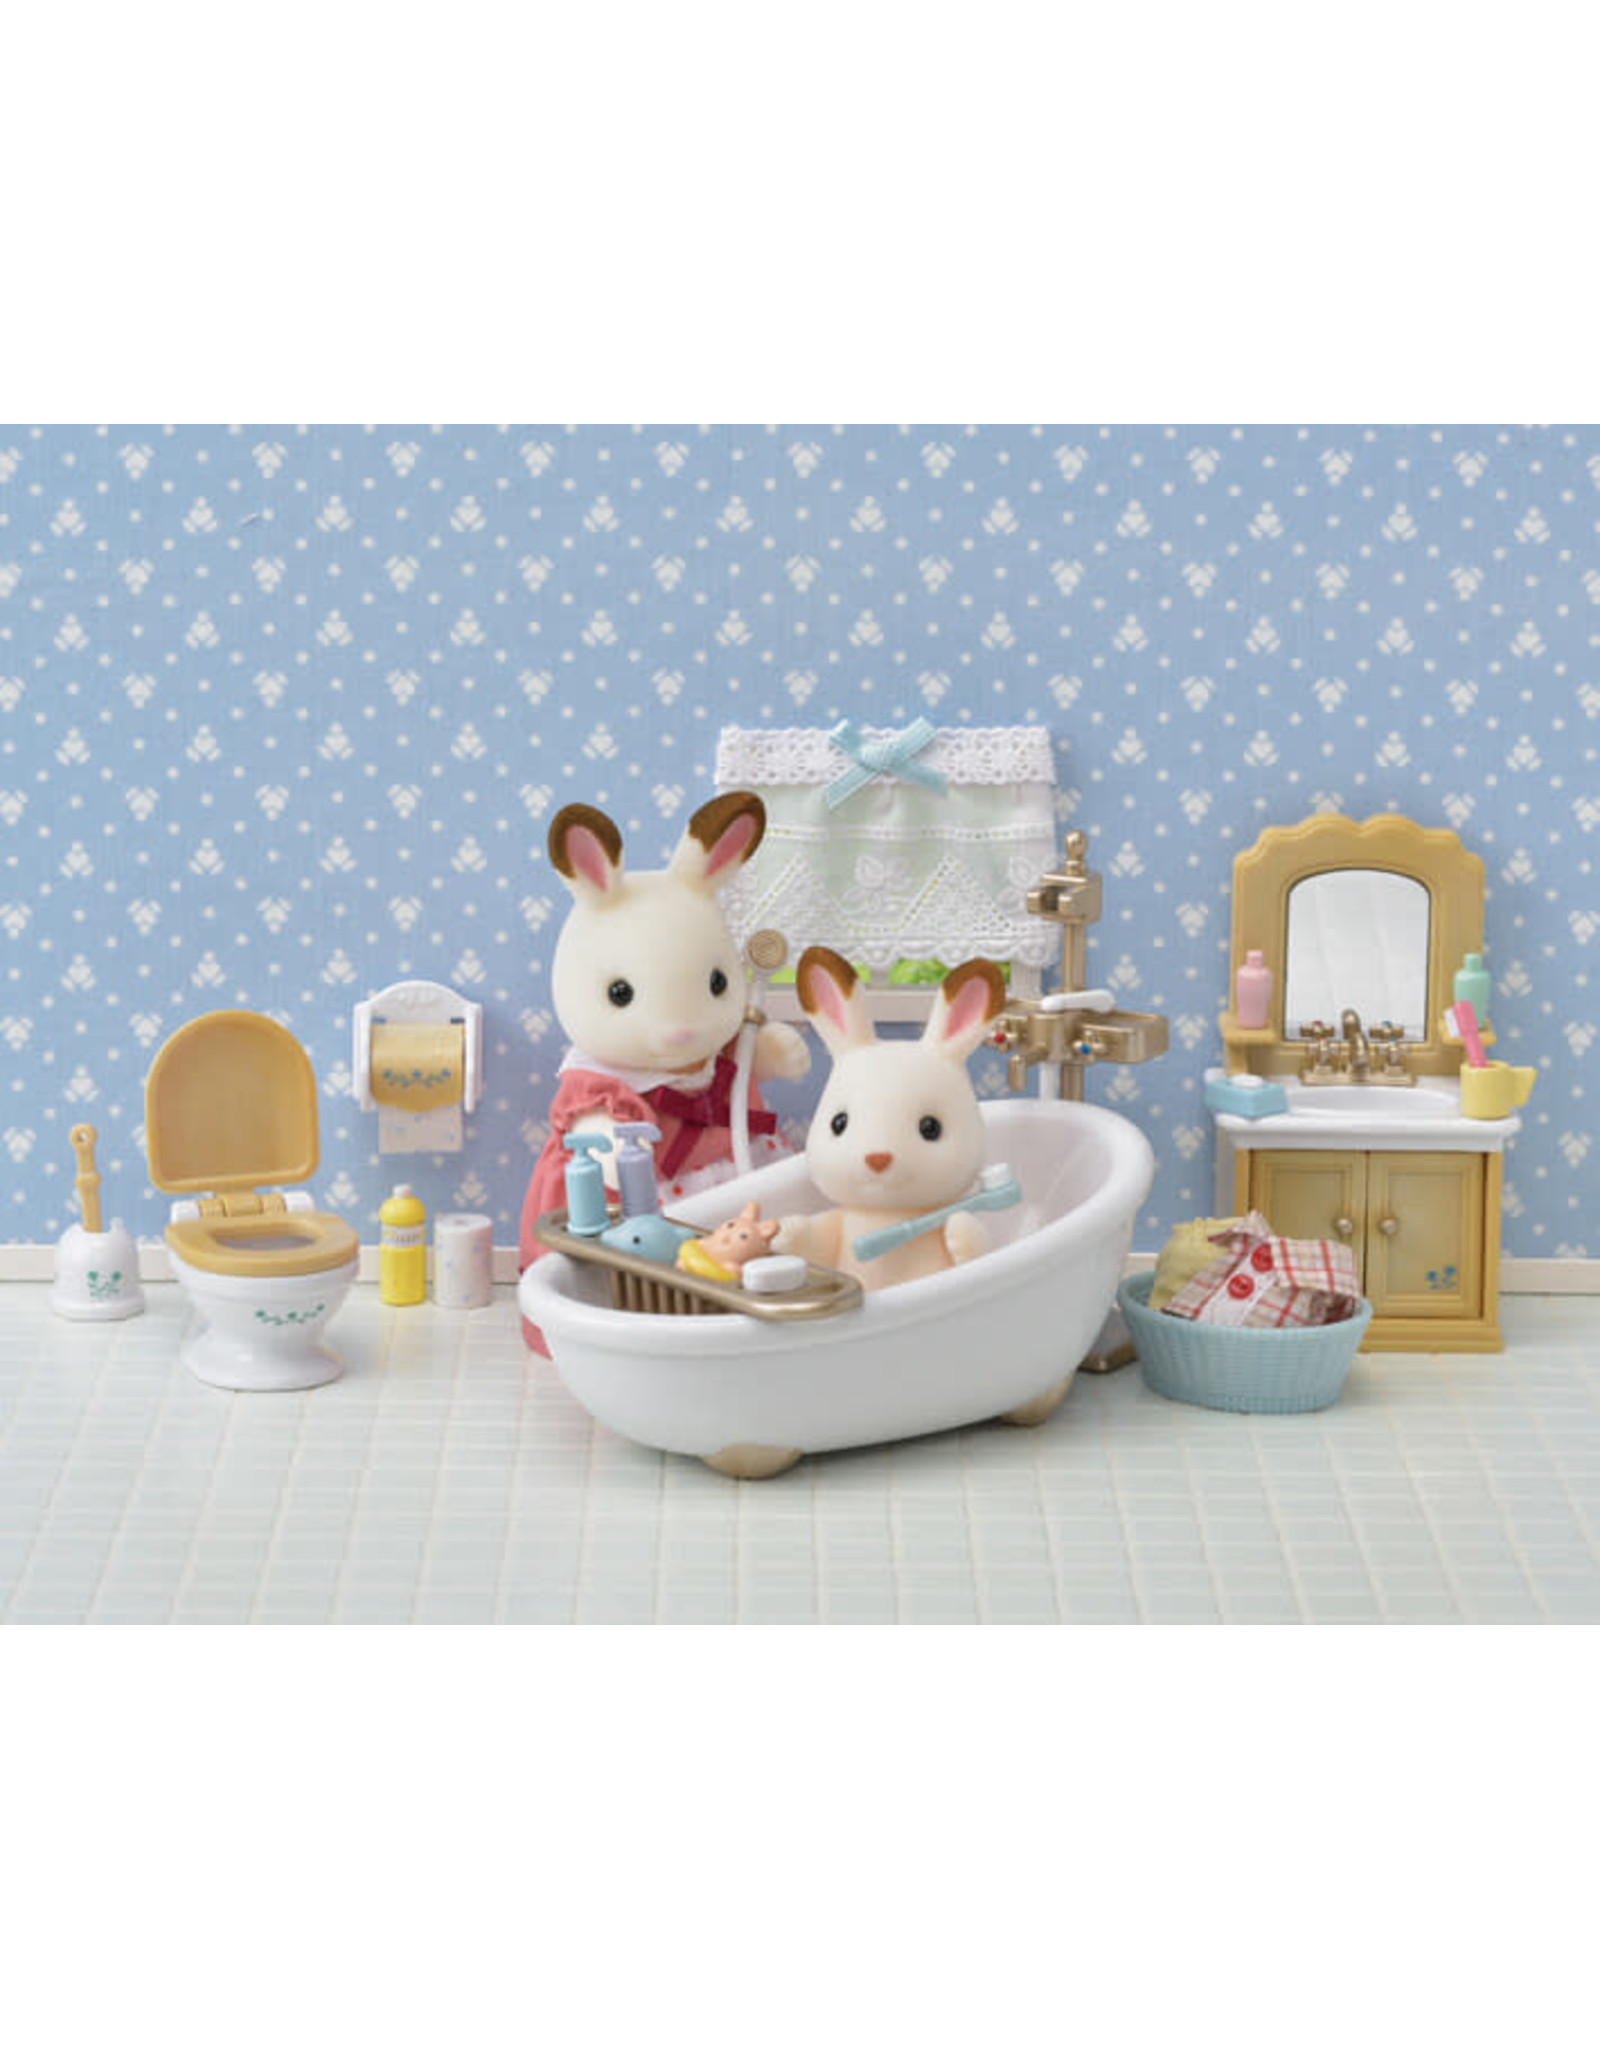 Calico Critters BL Country Bathroom Set Calico Critters